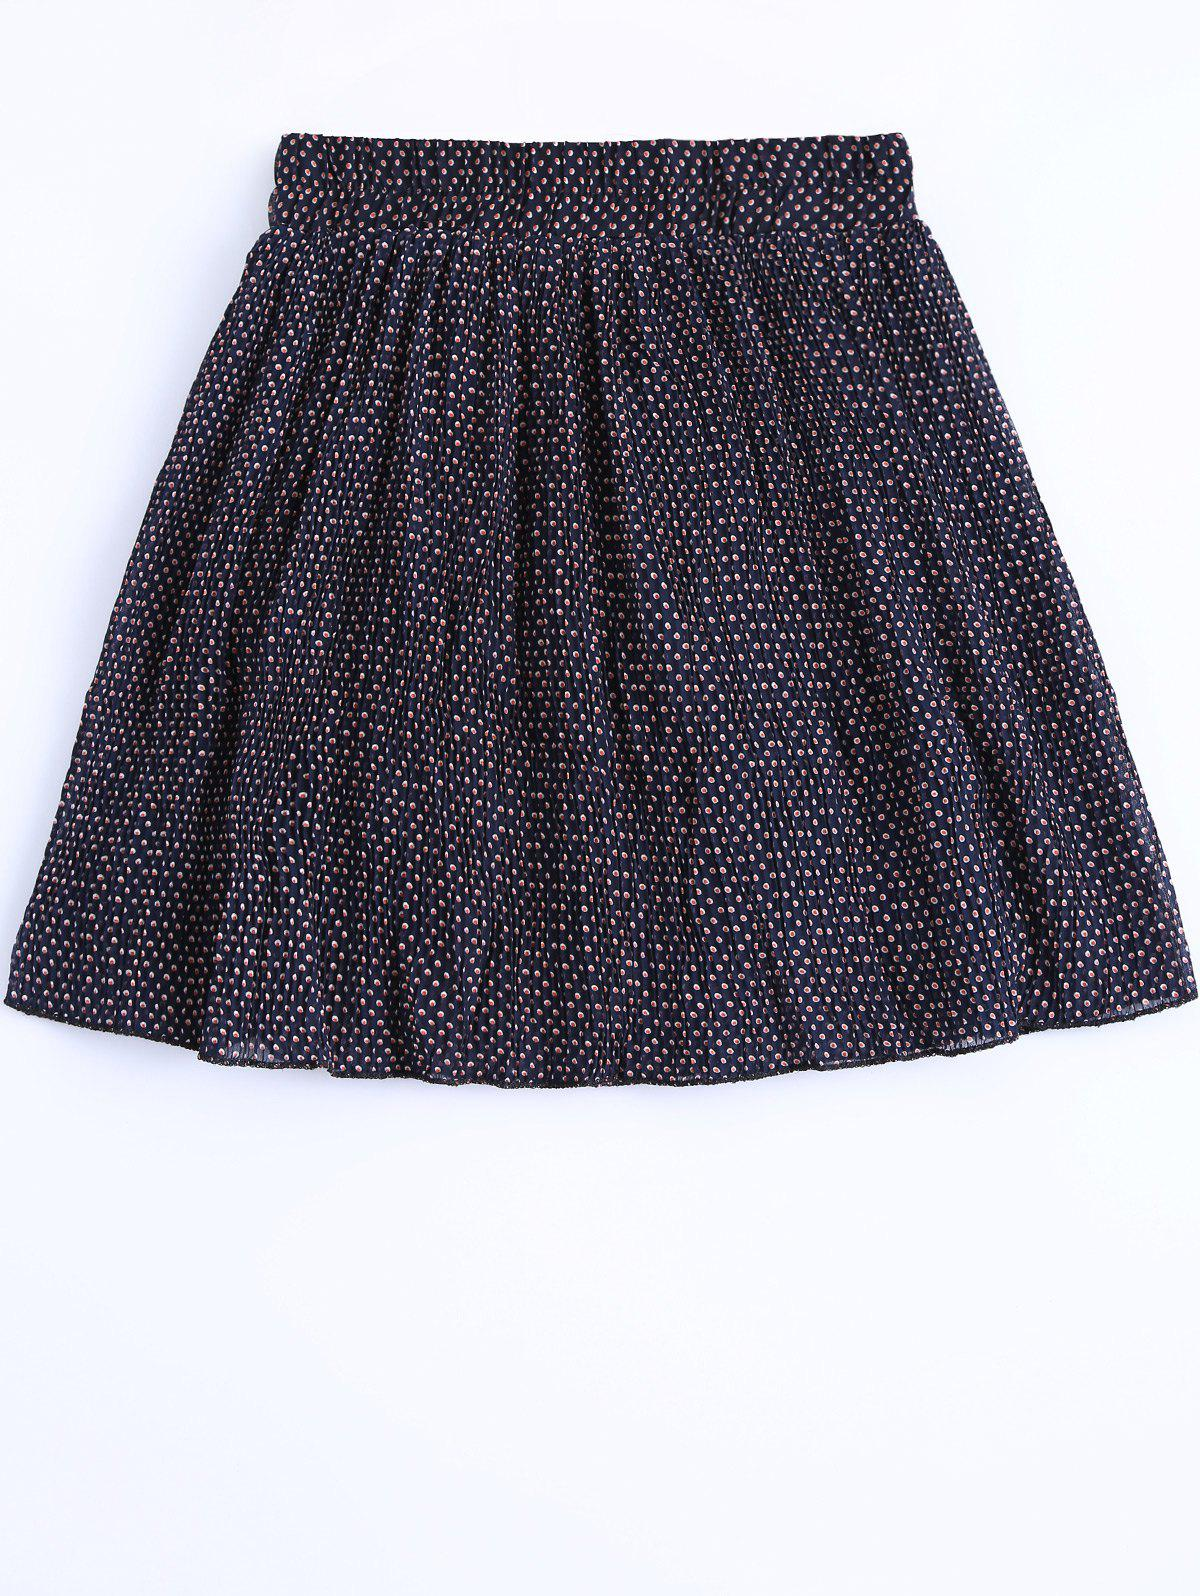 Women's Elastic Waist Polka Dot Skirt - DEEP BLUE ONE SIZE(FIT SIZE XS TO M)